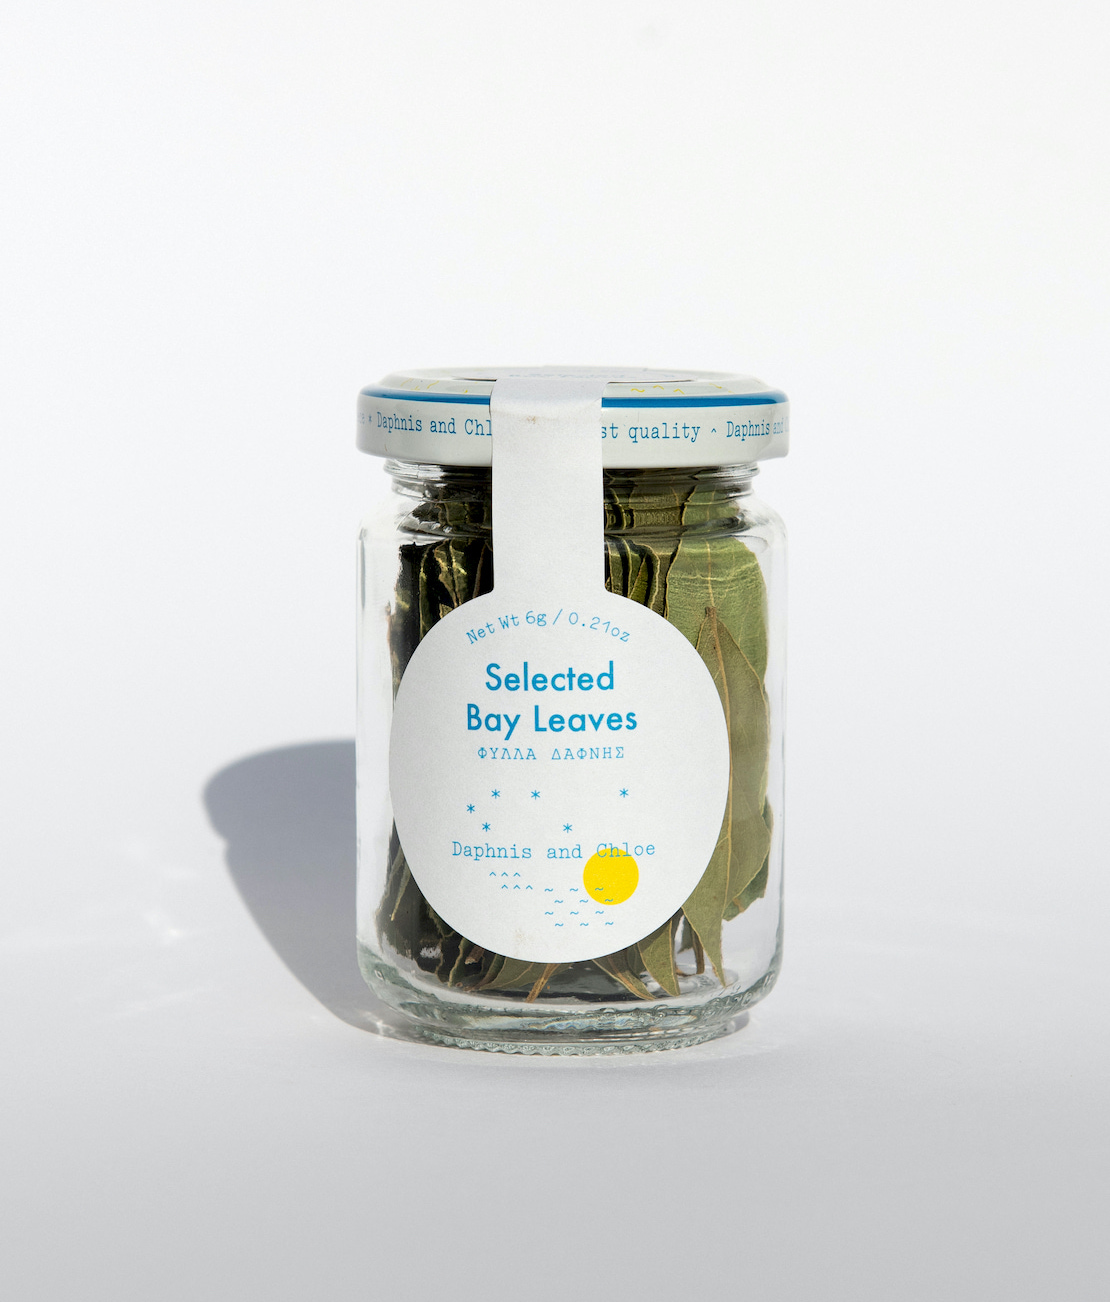 organic bay leaves from greece by daphnis and chloe